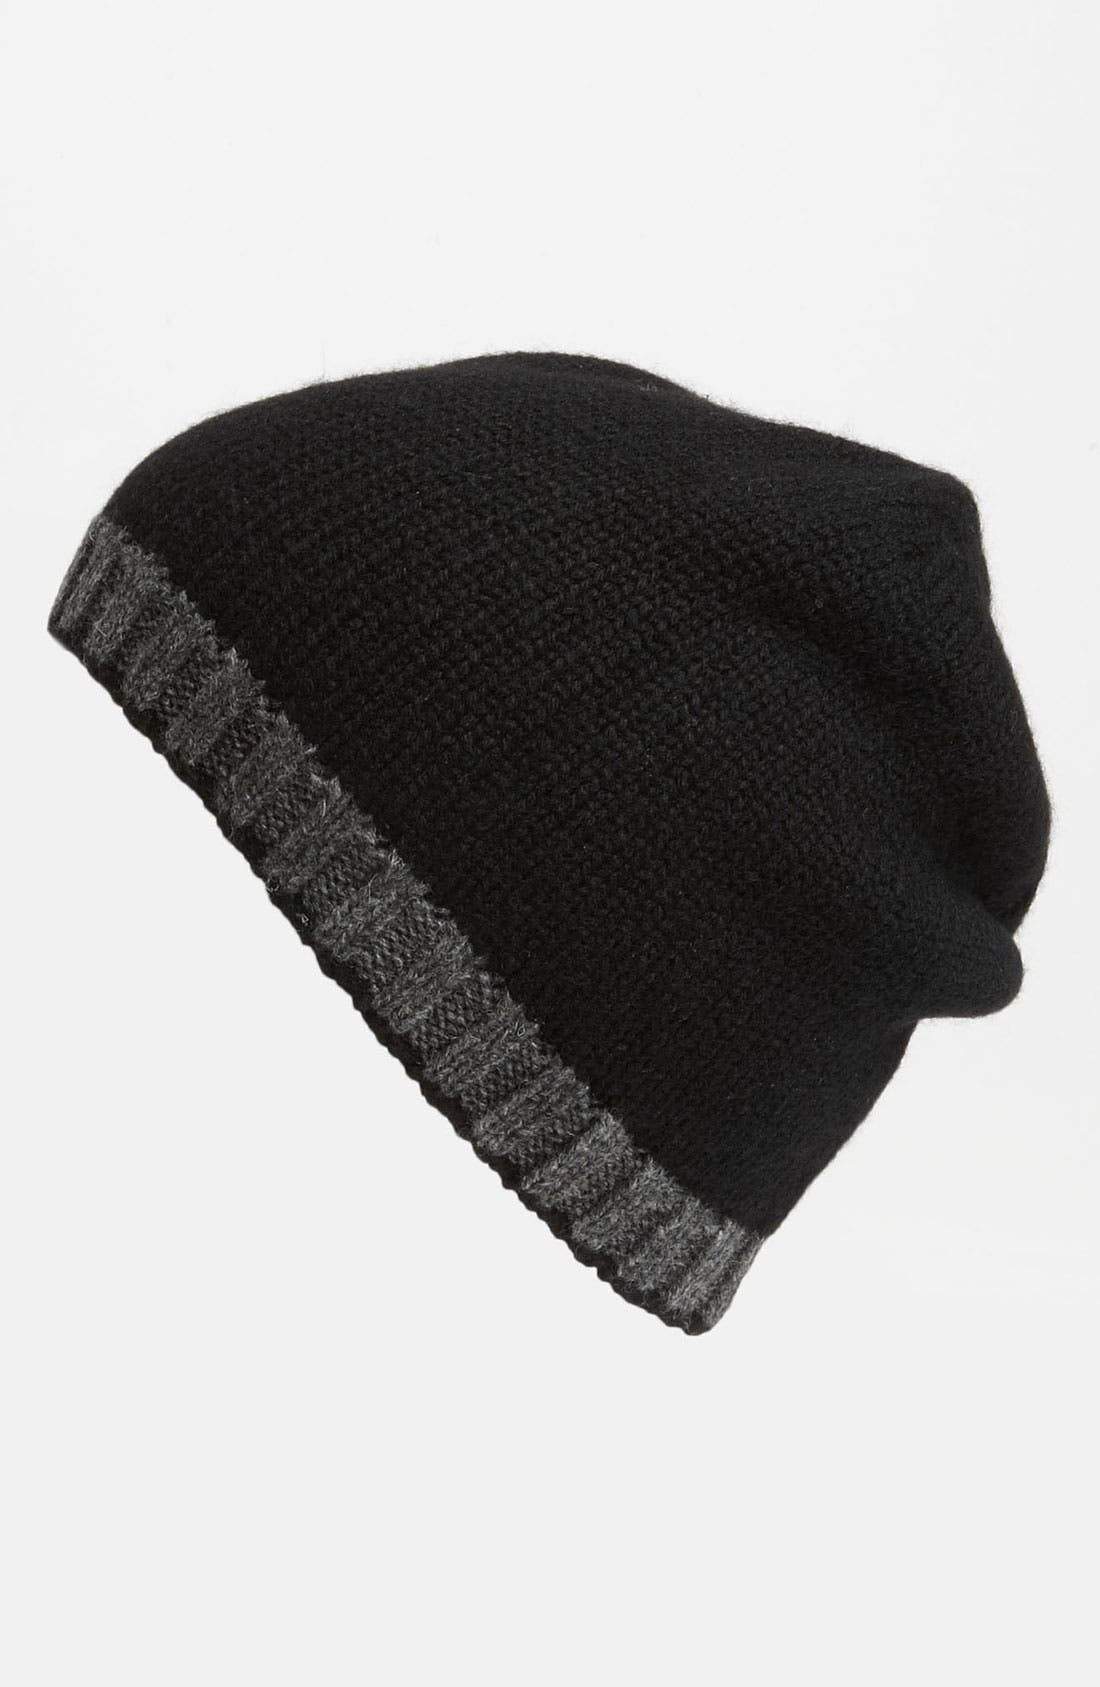 Alternate Image 1 Selected - Michael Kors Wool Beanie